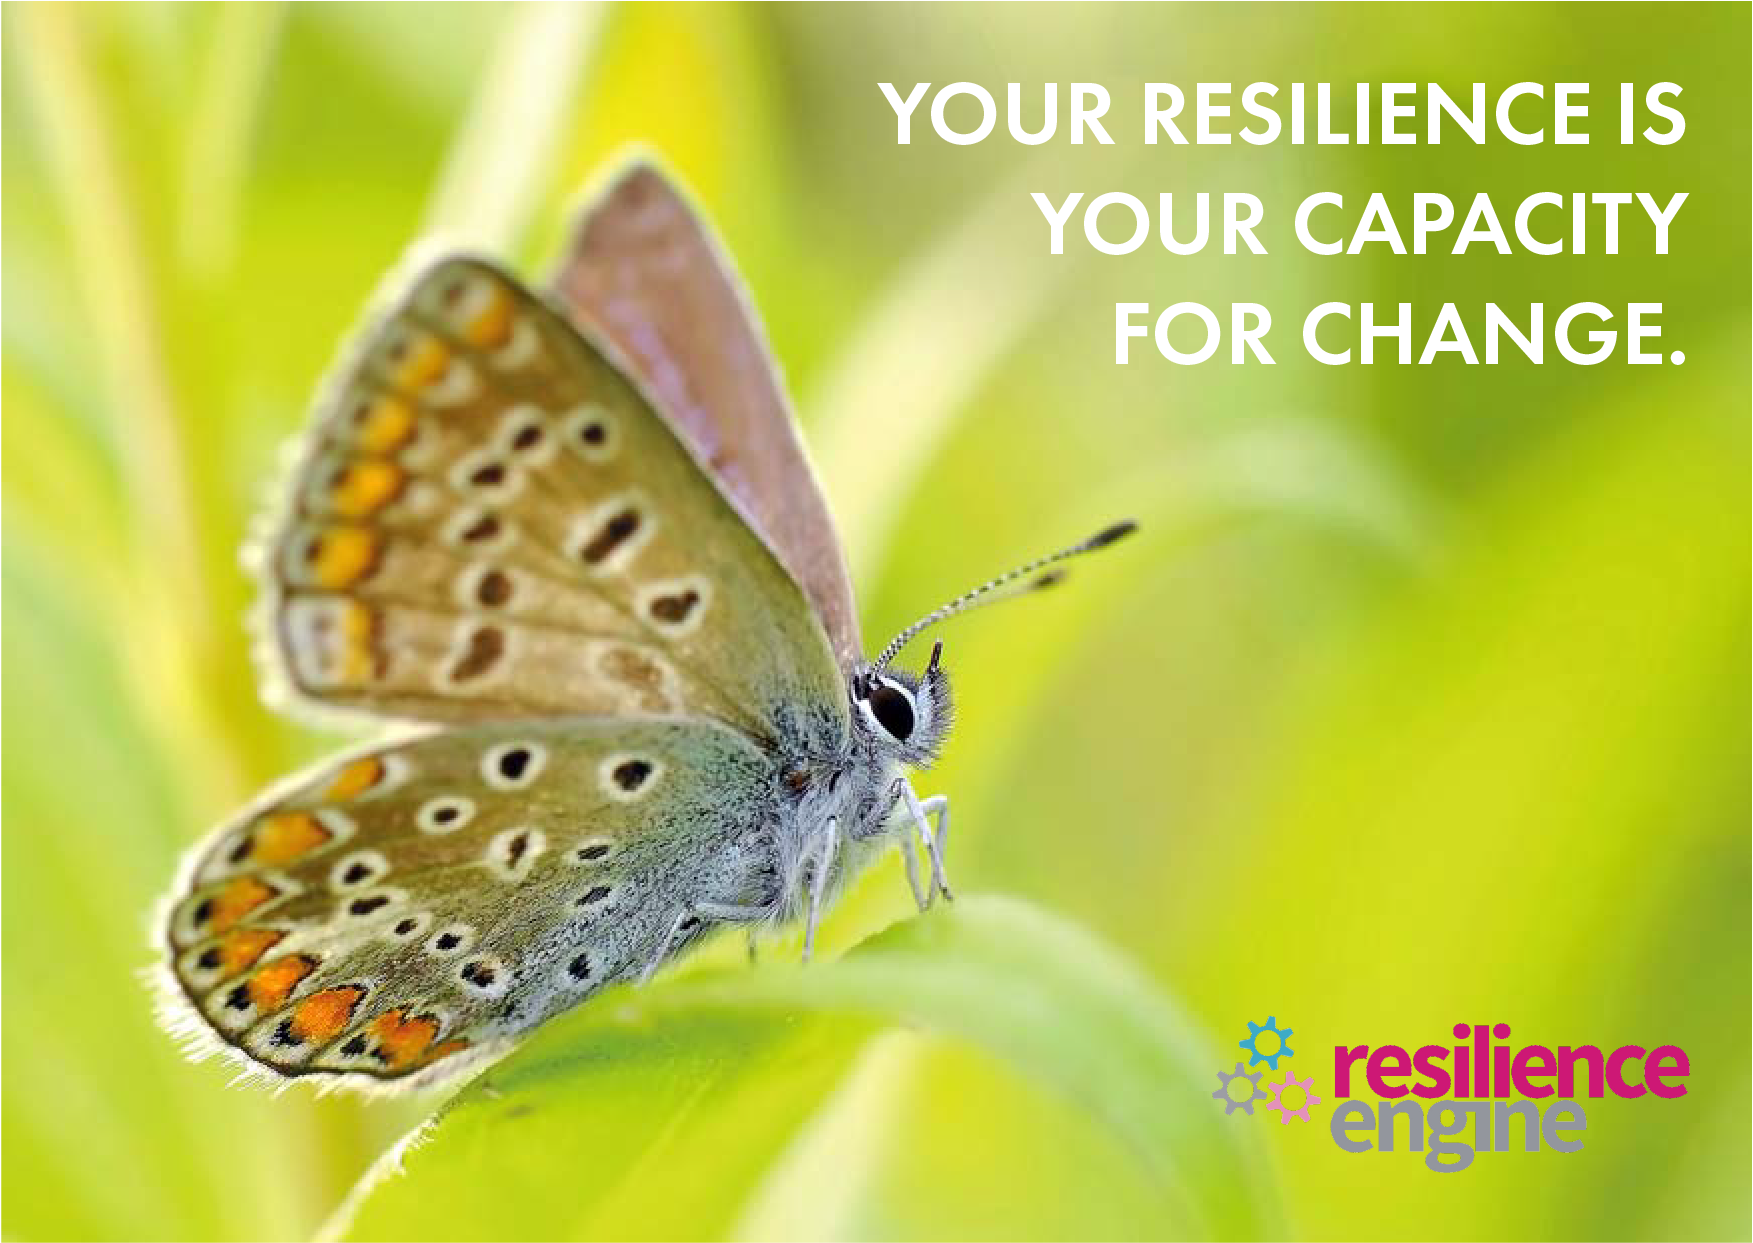 Butterfly, resilience quote, resilience engine quote, wellbeing quote